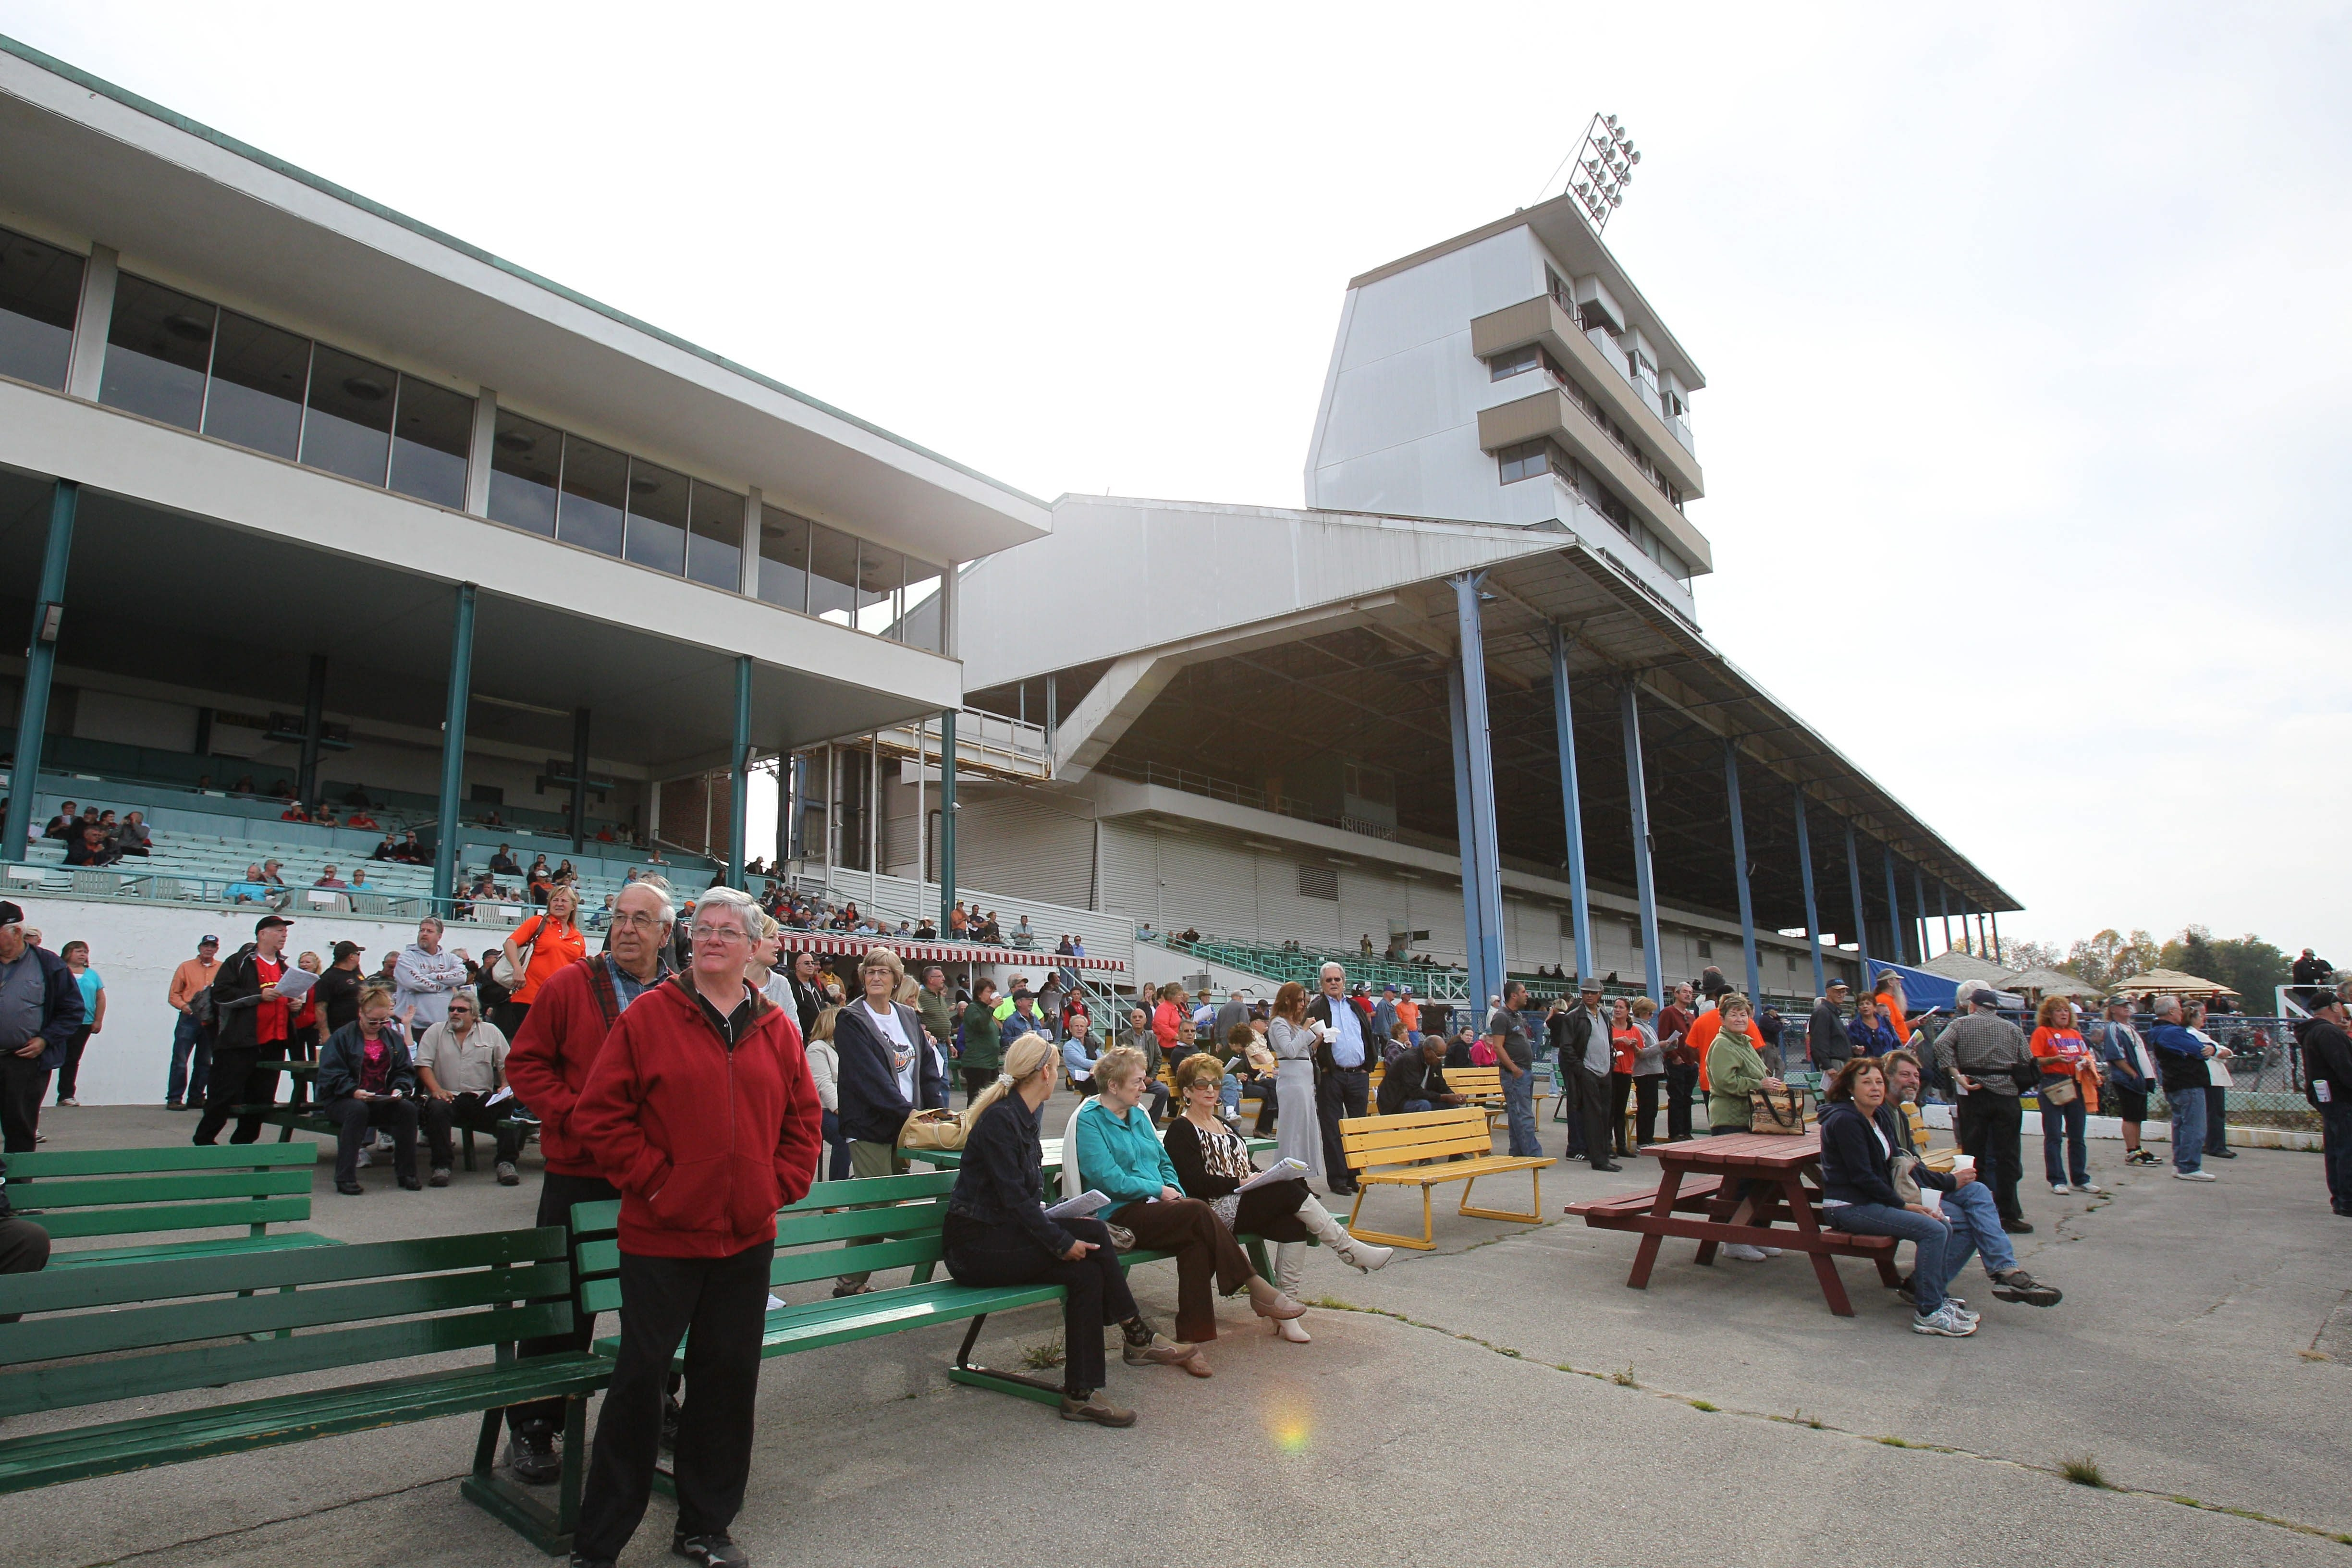 When the racing season ended last Oct. 15, it was thought the Fort Erie Race Track might not reopen.